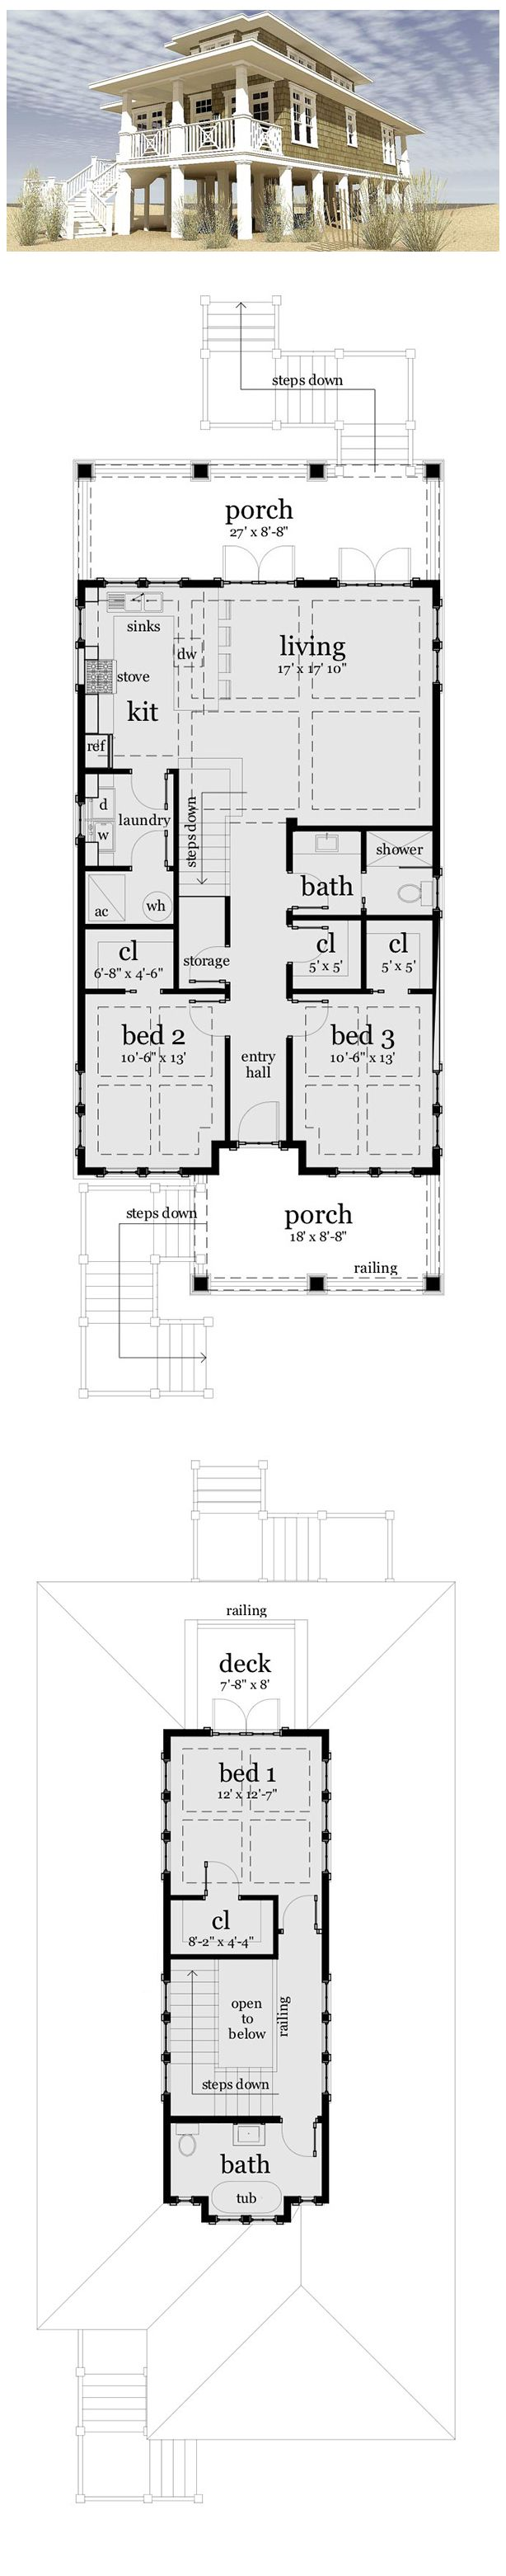 coastal craftsman house plan 70806 - Beach House Plans